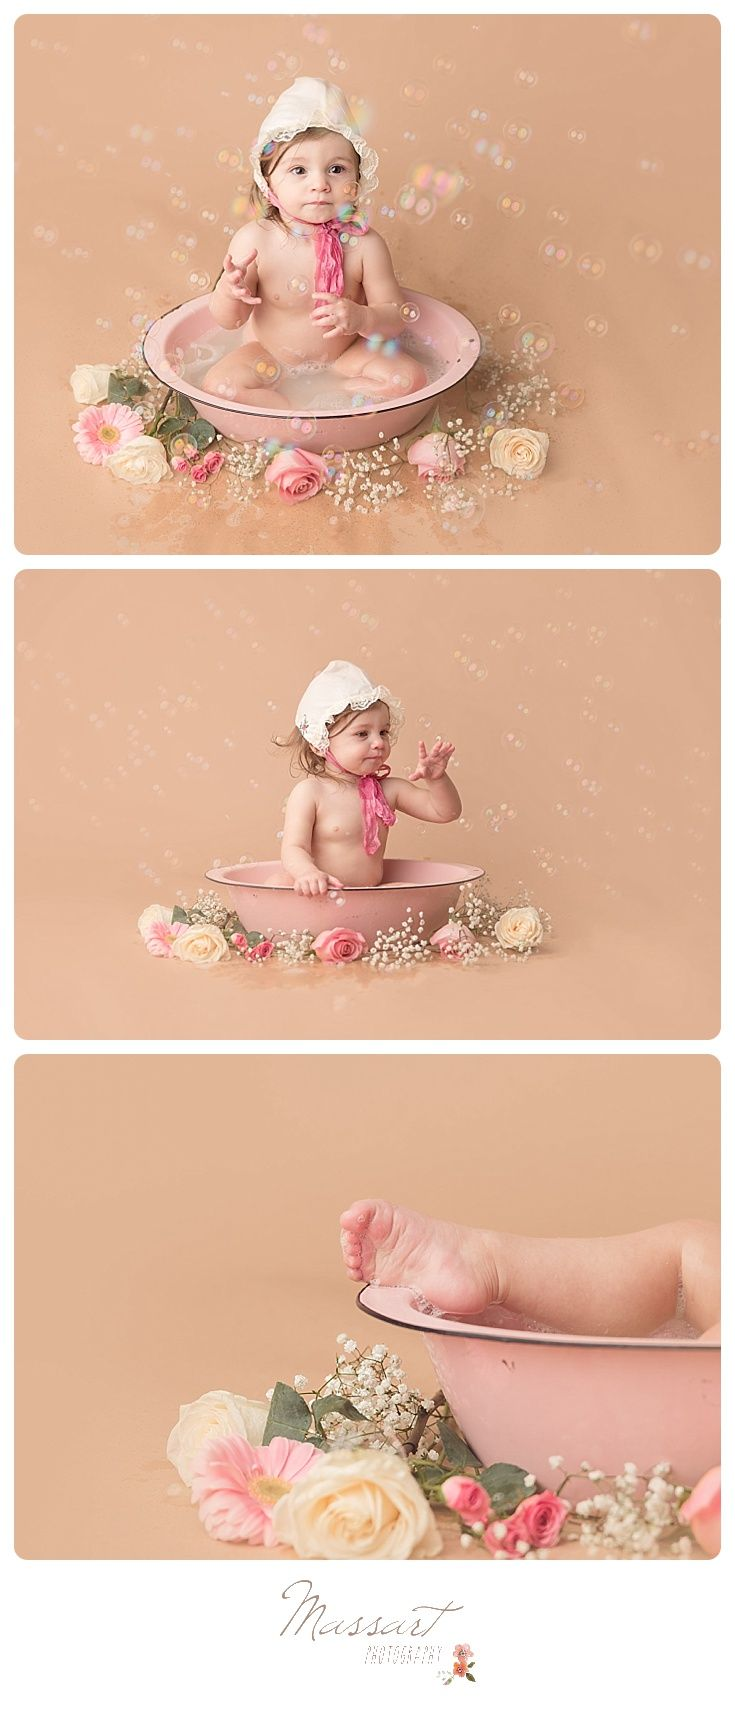 Girly one year milestone session in studio with vintage bath and bubbles after cake smash; first birthday; flowers and bonnet | Photo by Massart Photography of RI www.massartphotography.com; info@massartphotography.com